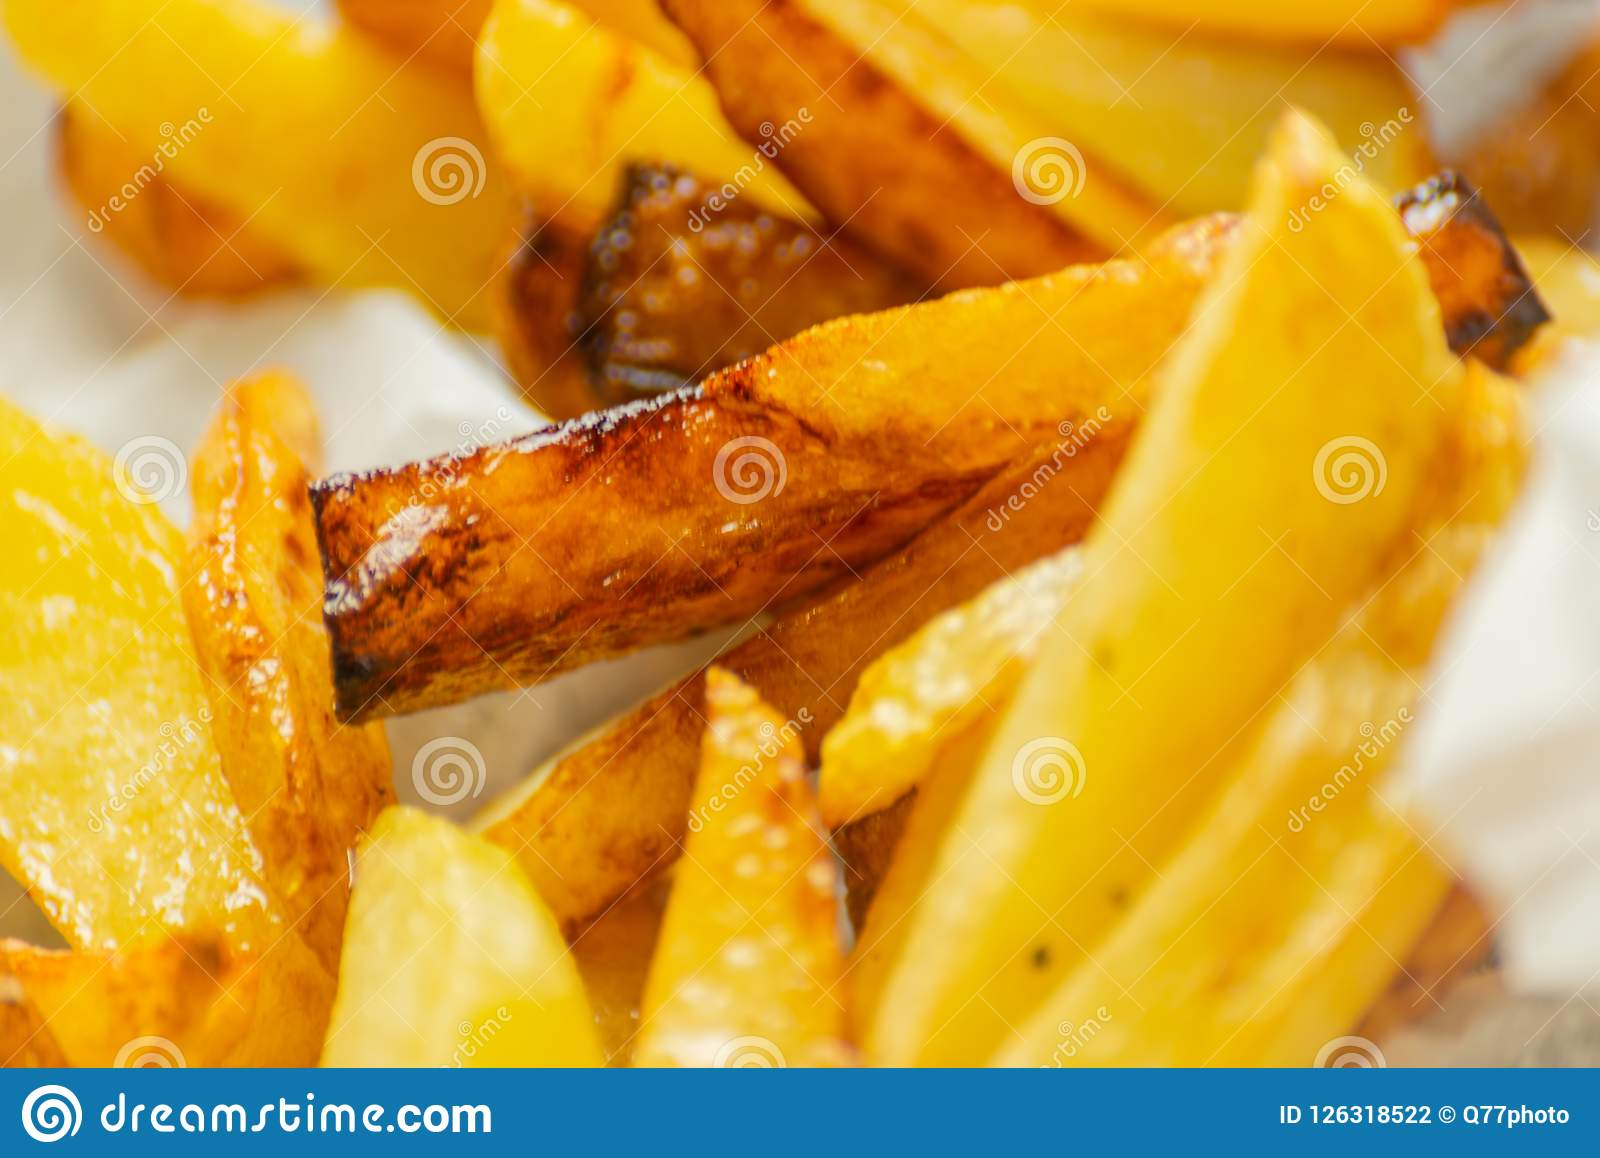 Closeup of golden fries prepared from fresh potatoes, greasy but